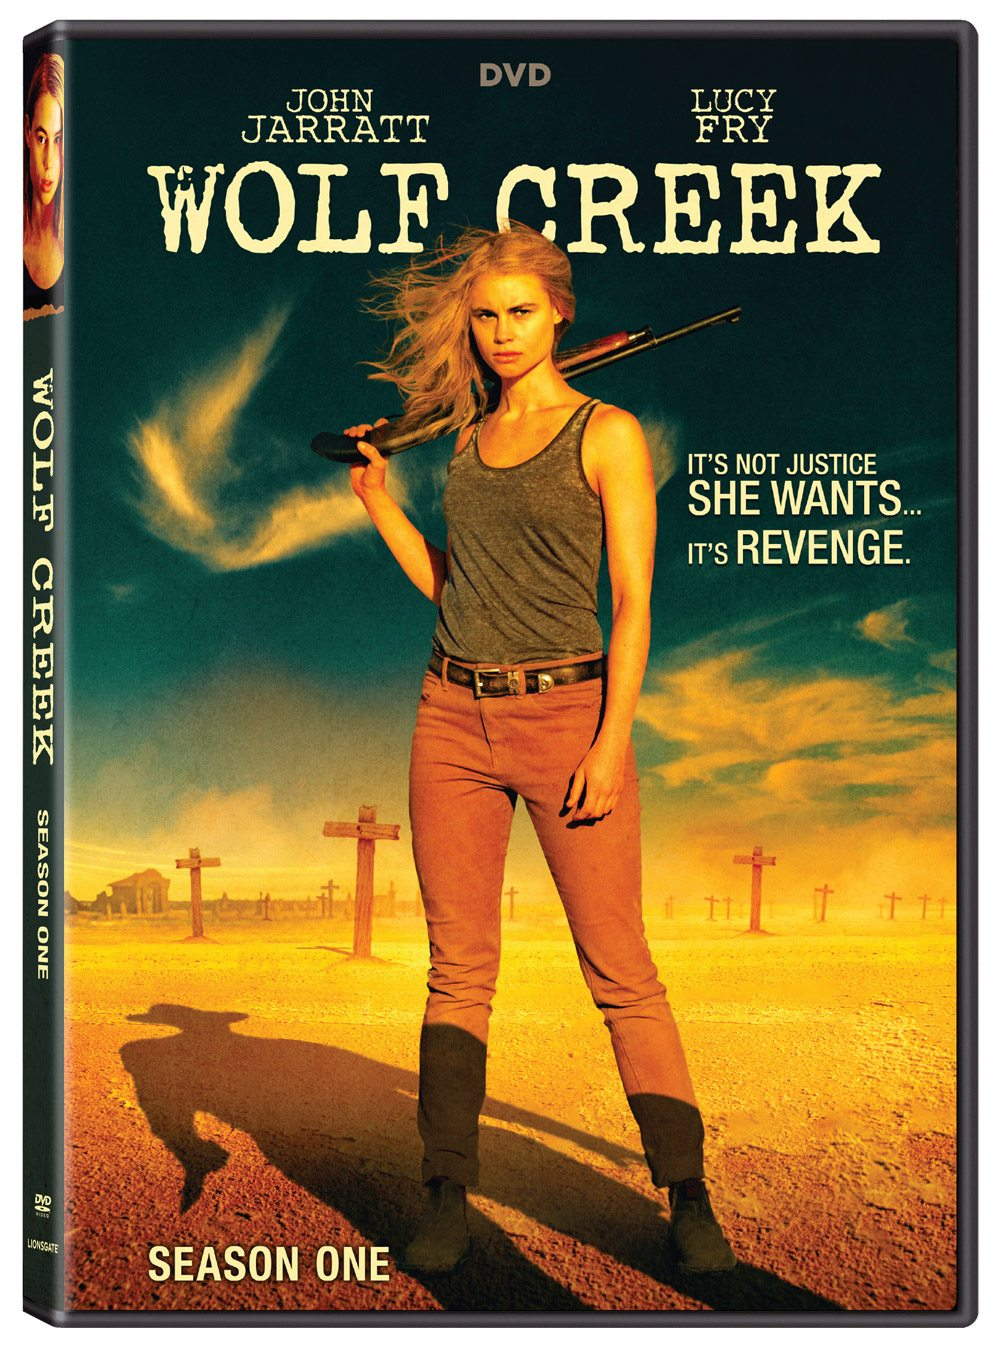 Wolf Creek S1 DVD amaray - Wolf Creek Season 2 Gets an All-New Teaser Trailer